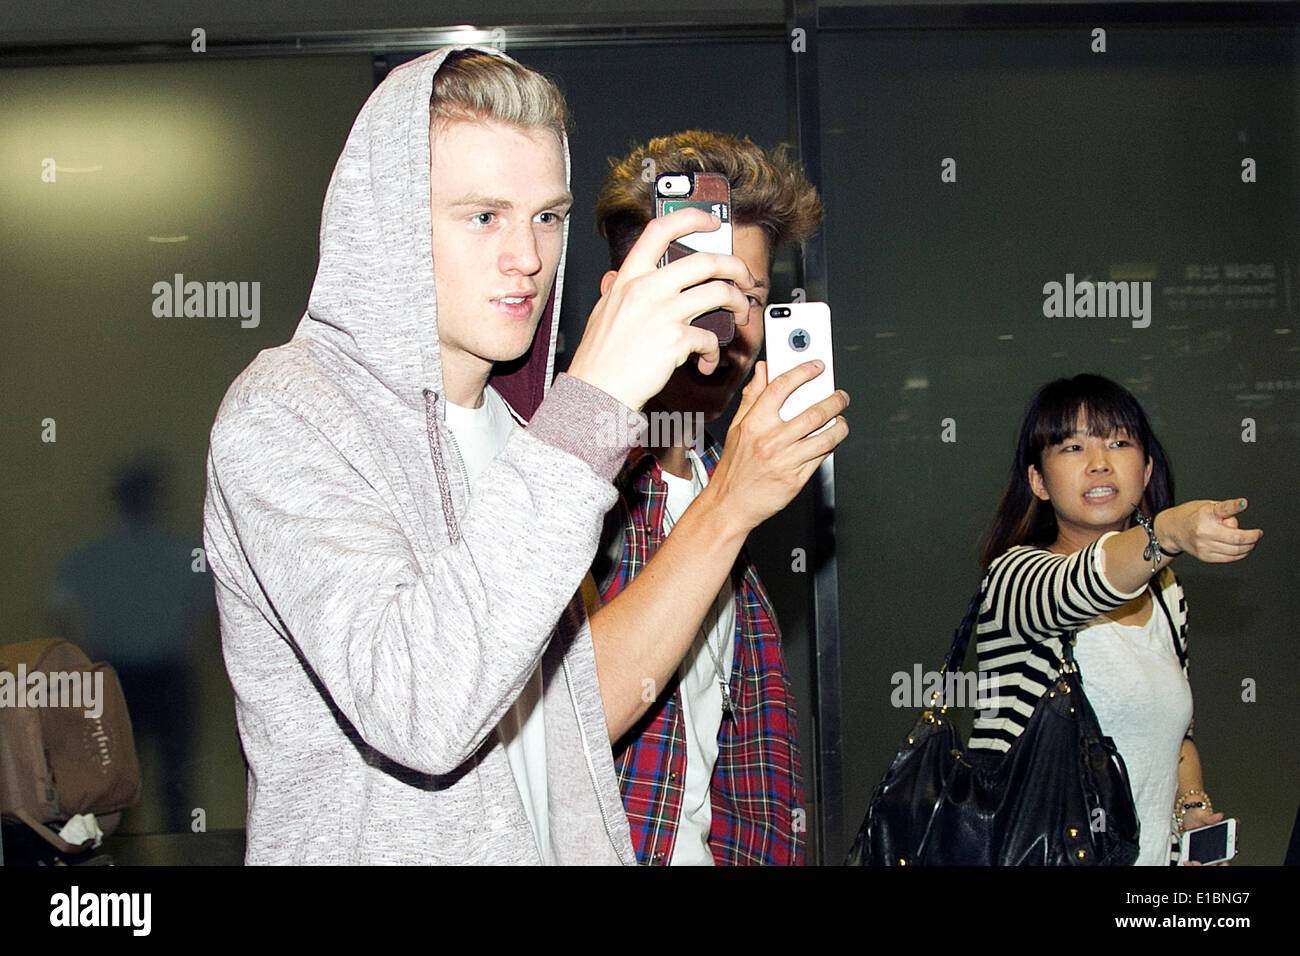 Chiba Japan 30th May 2014 L To R Tristan Evans And James Mcvey